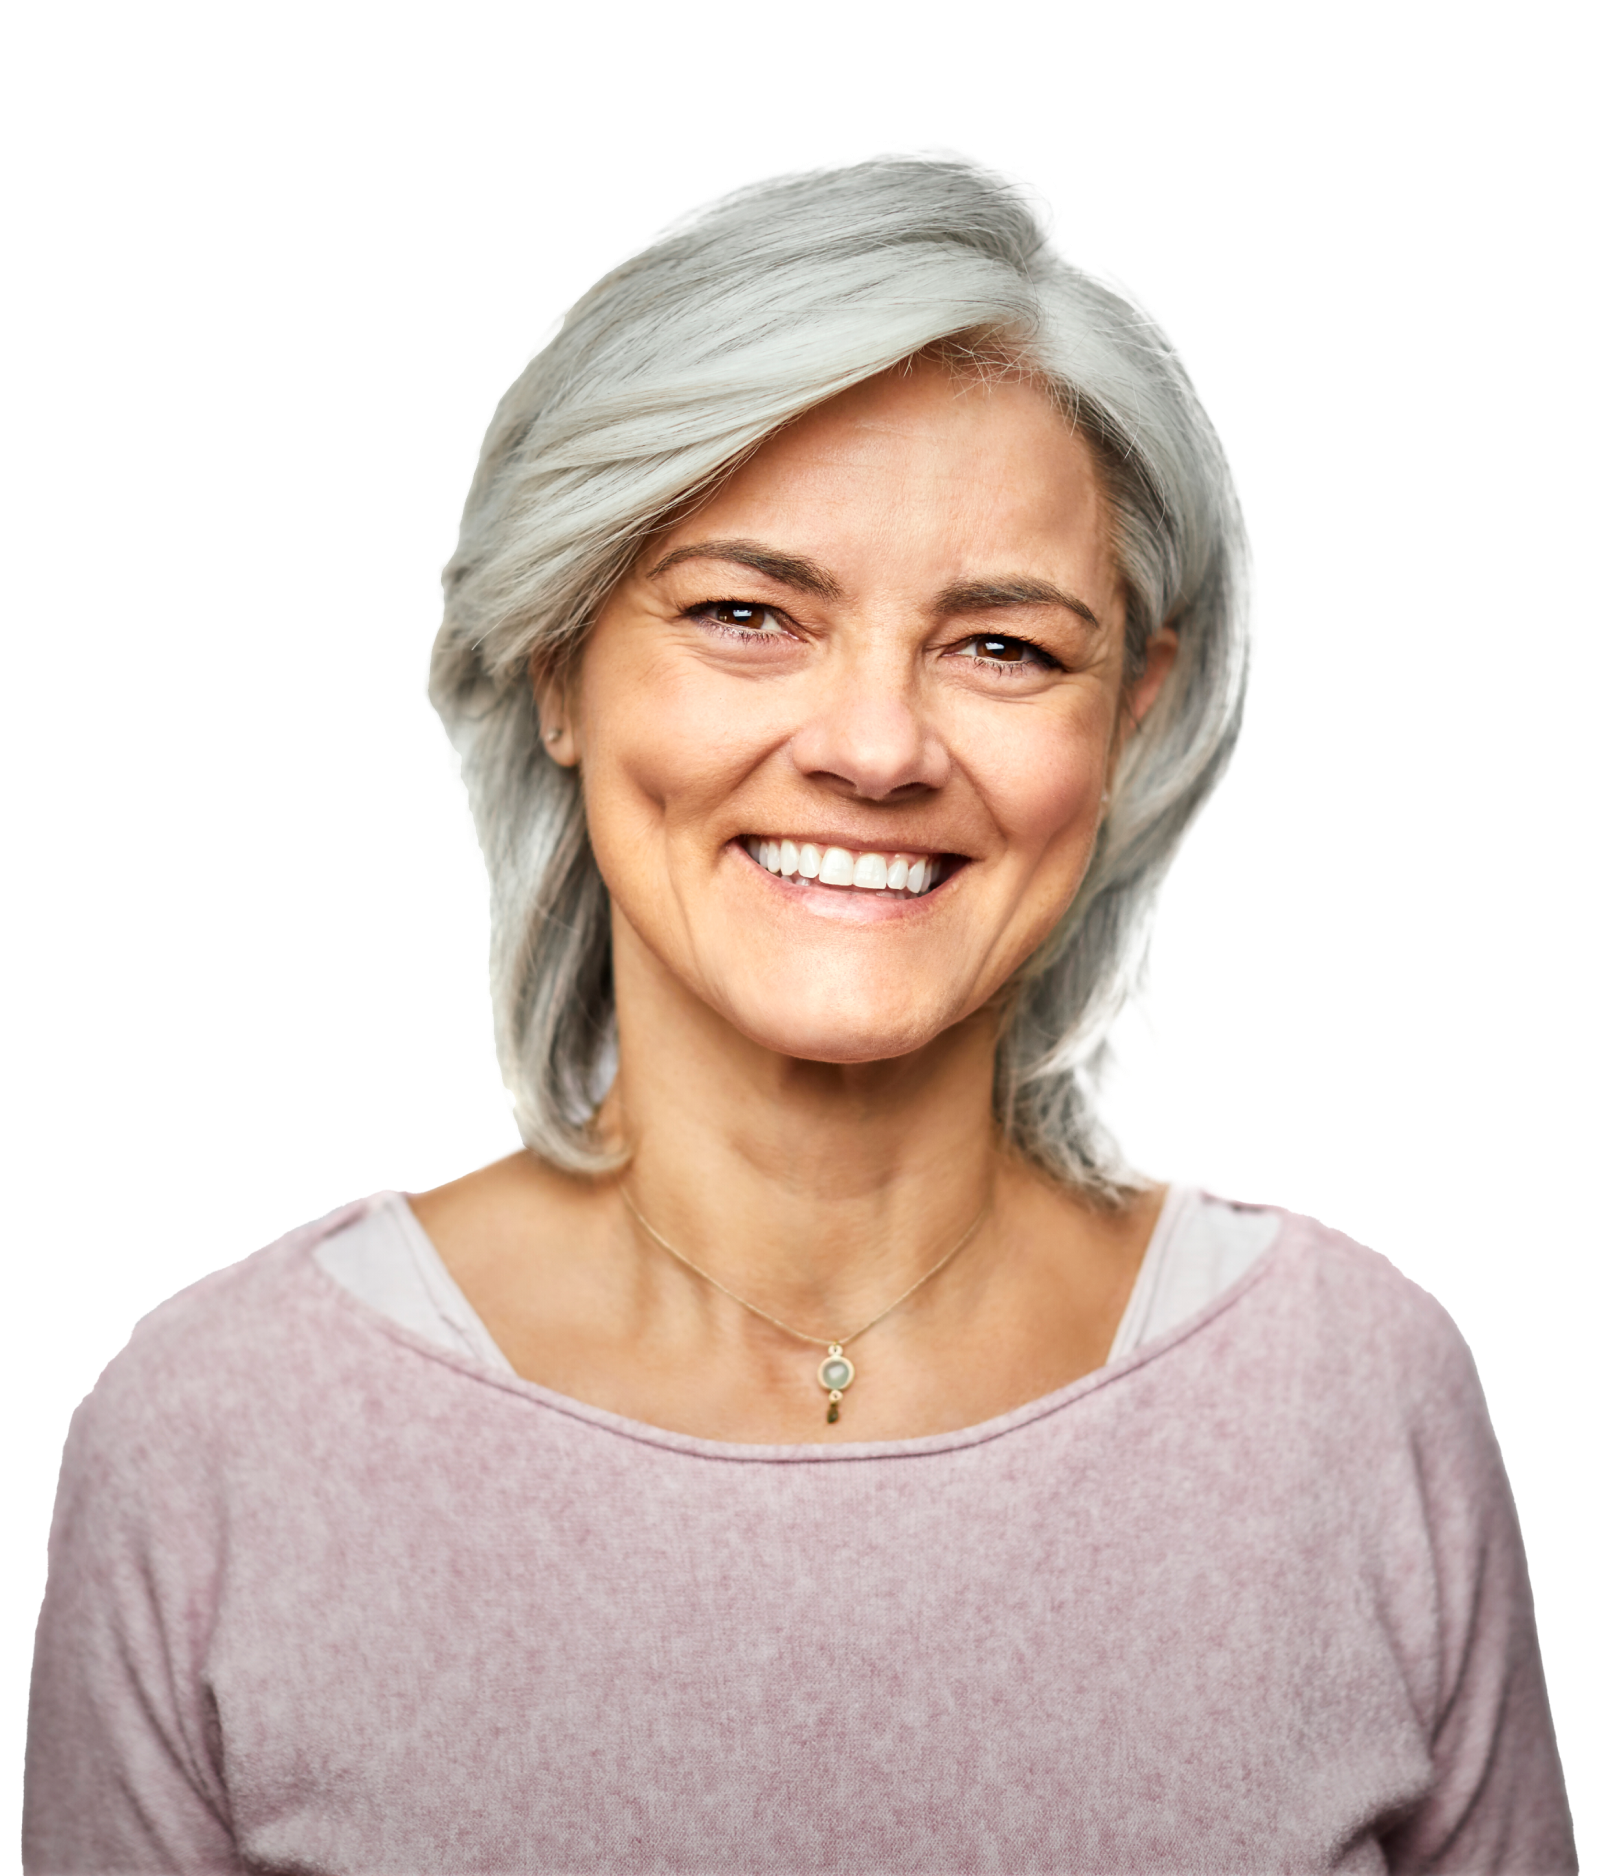 middle-aged woman smiles confidently